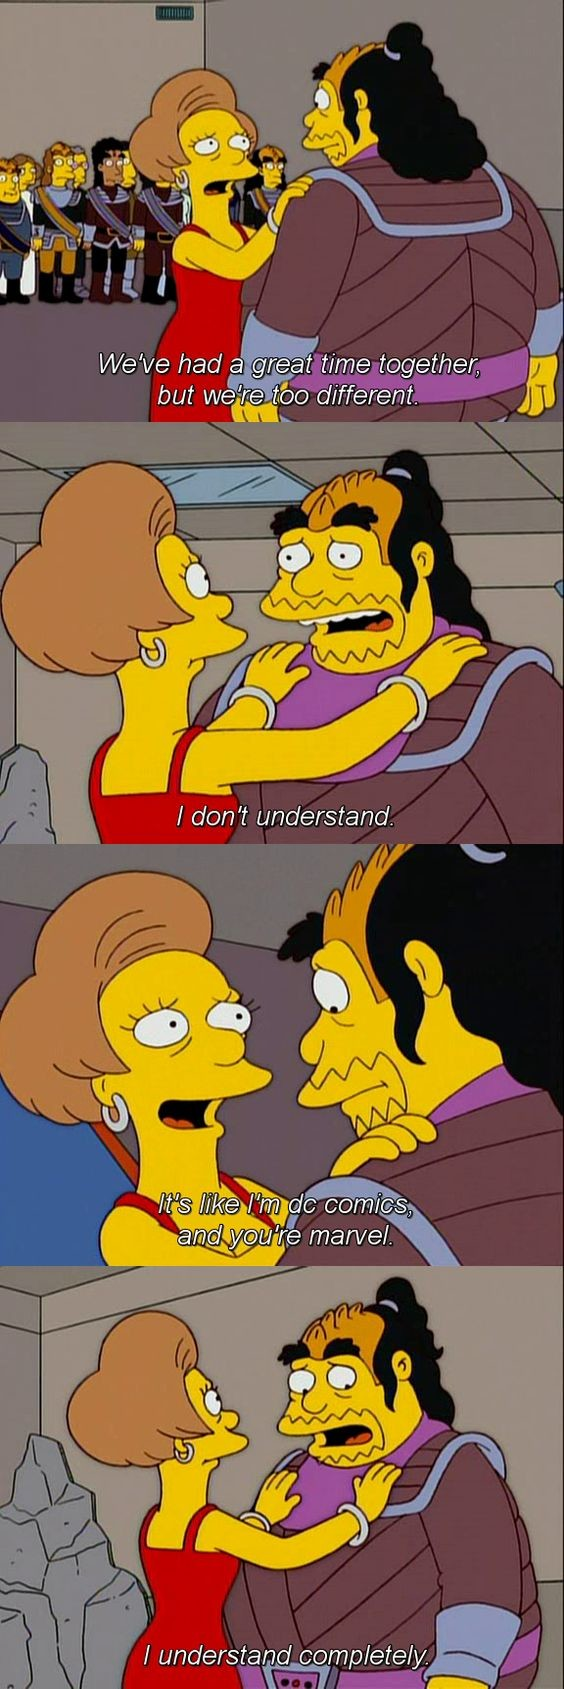 """Simpsons Mini Comp #4. join list: TheSimpsons (57 subs)Mention History. but """"ii/ iii' ift? c) different.. trump voters like"""